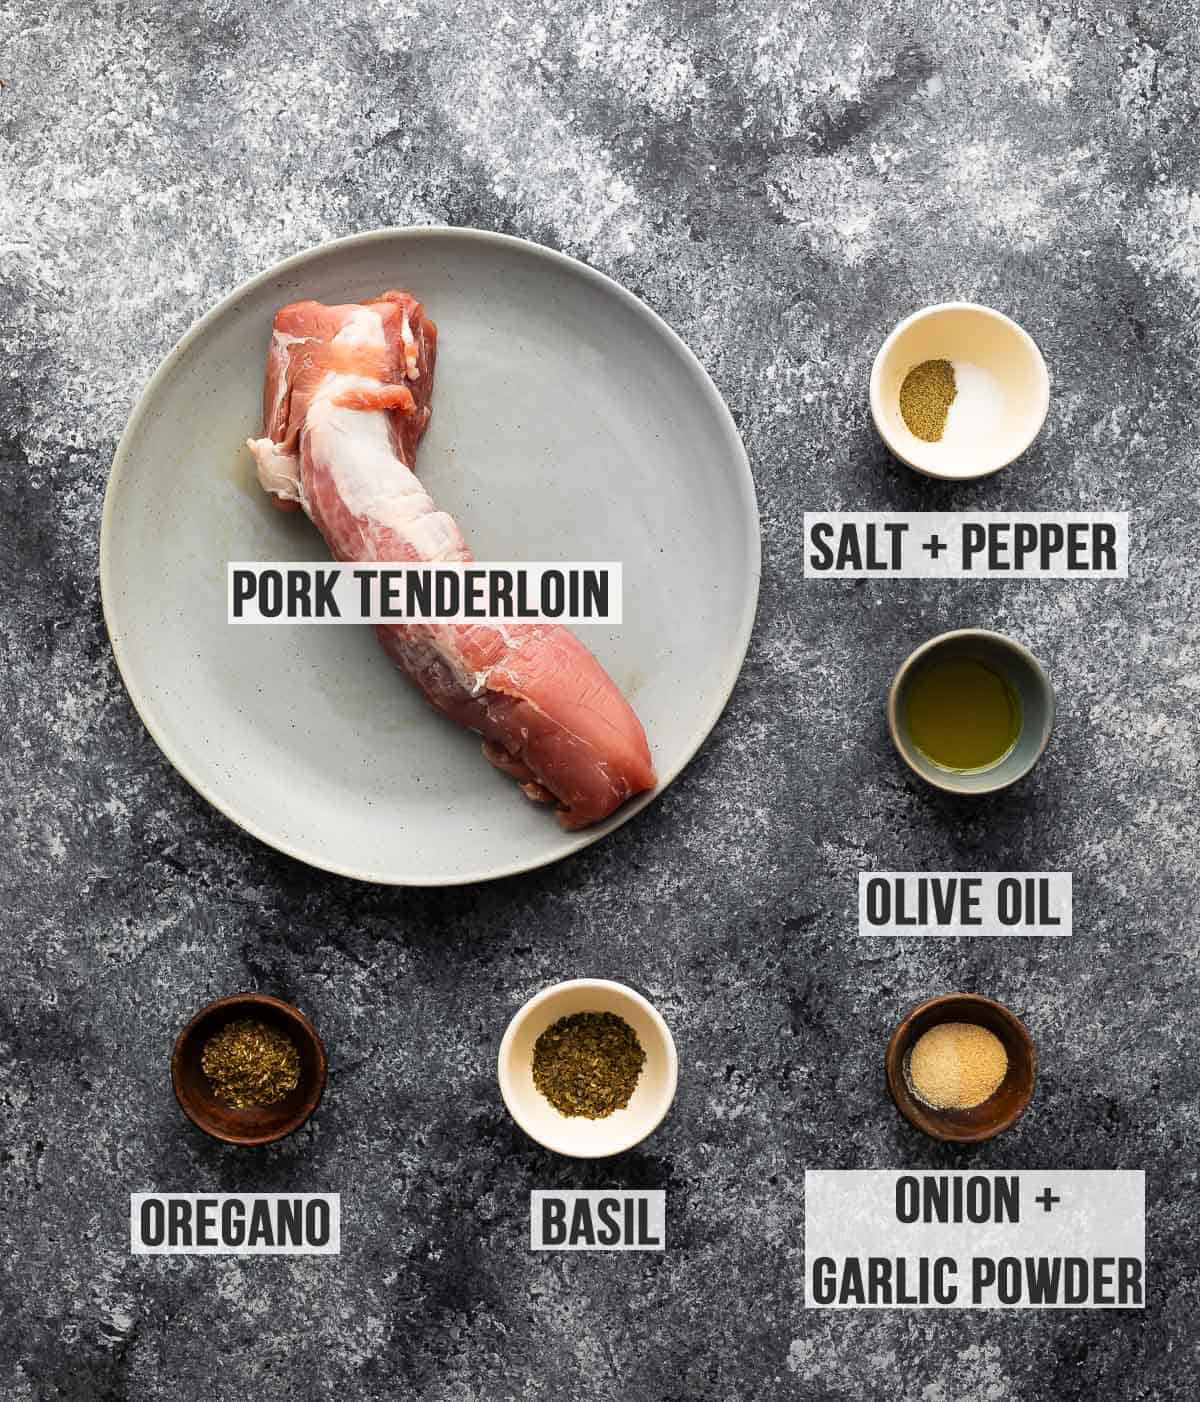 Top view of the ingredients for making pork tenderloin in the deep fryer (with labels)